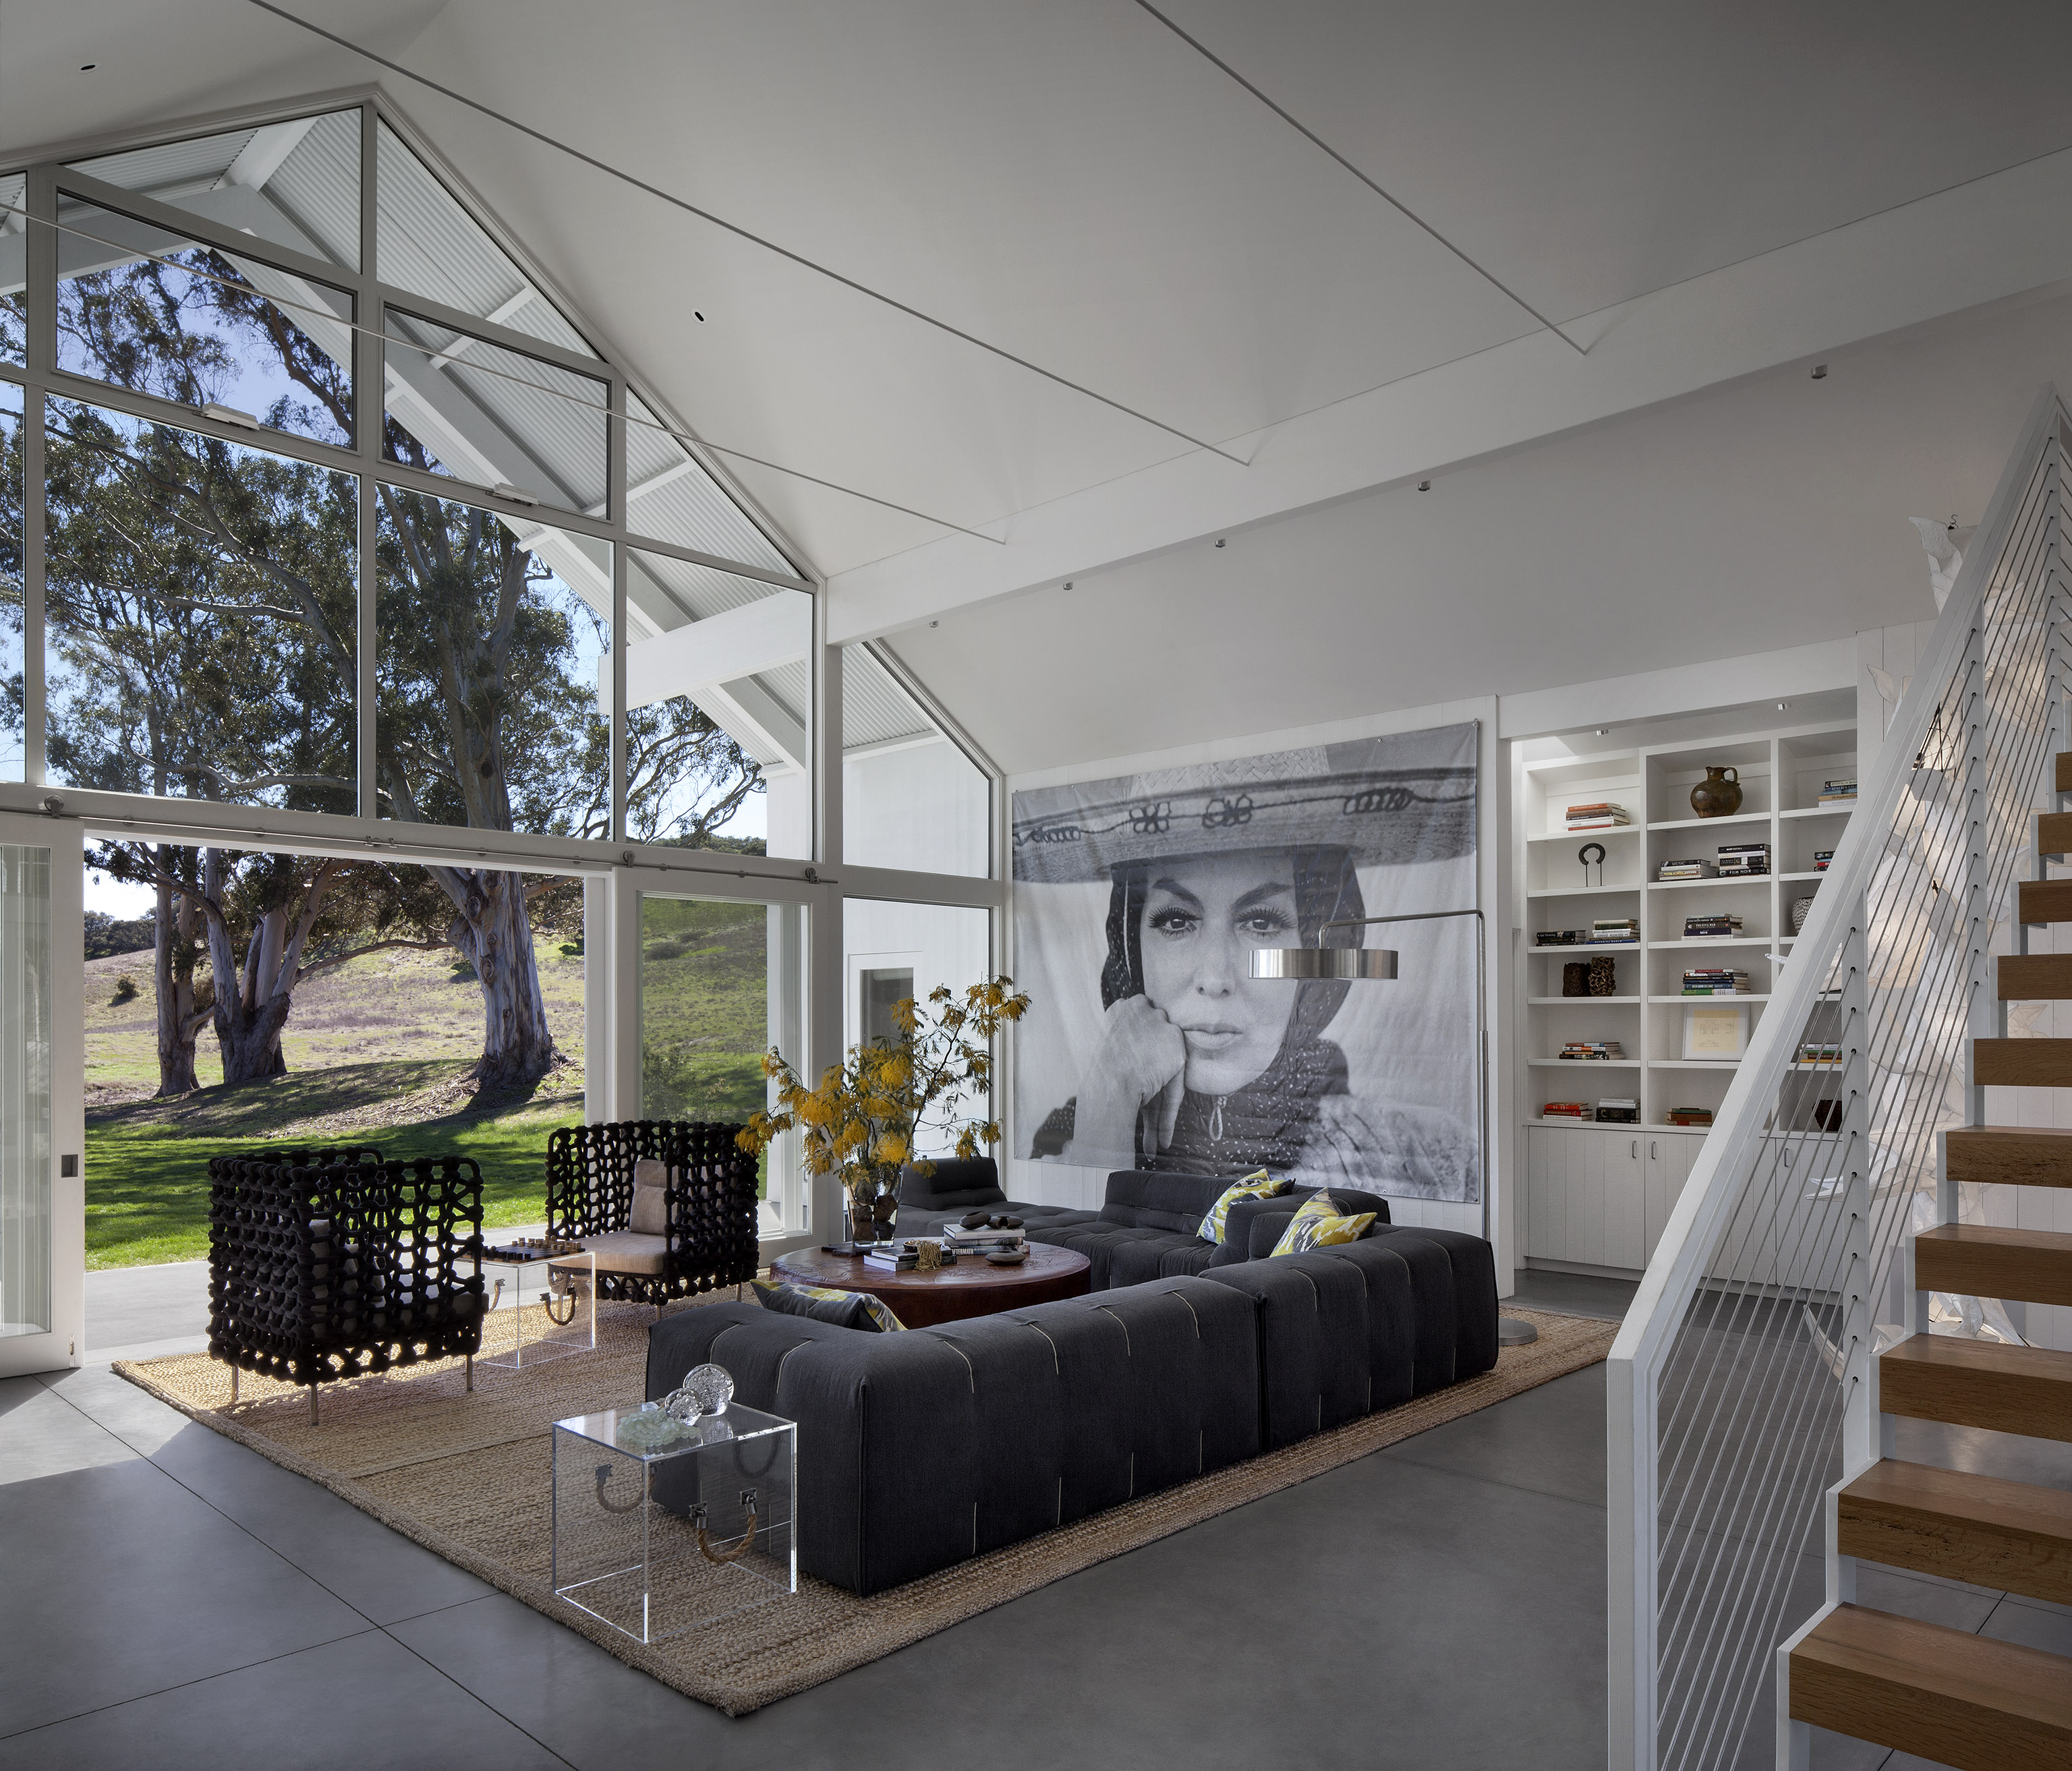 The living room is flush with unique touches, from the large button tufted sectional and a pair of knotted-frame club chairs to the immense black and white portrait standing next to built-in wall shelving. A large woven area rug centers the furniture over the concrete flooring.